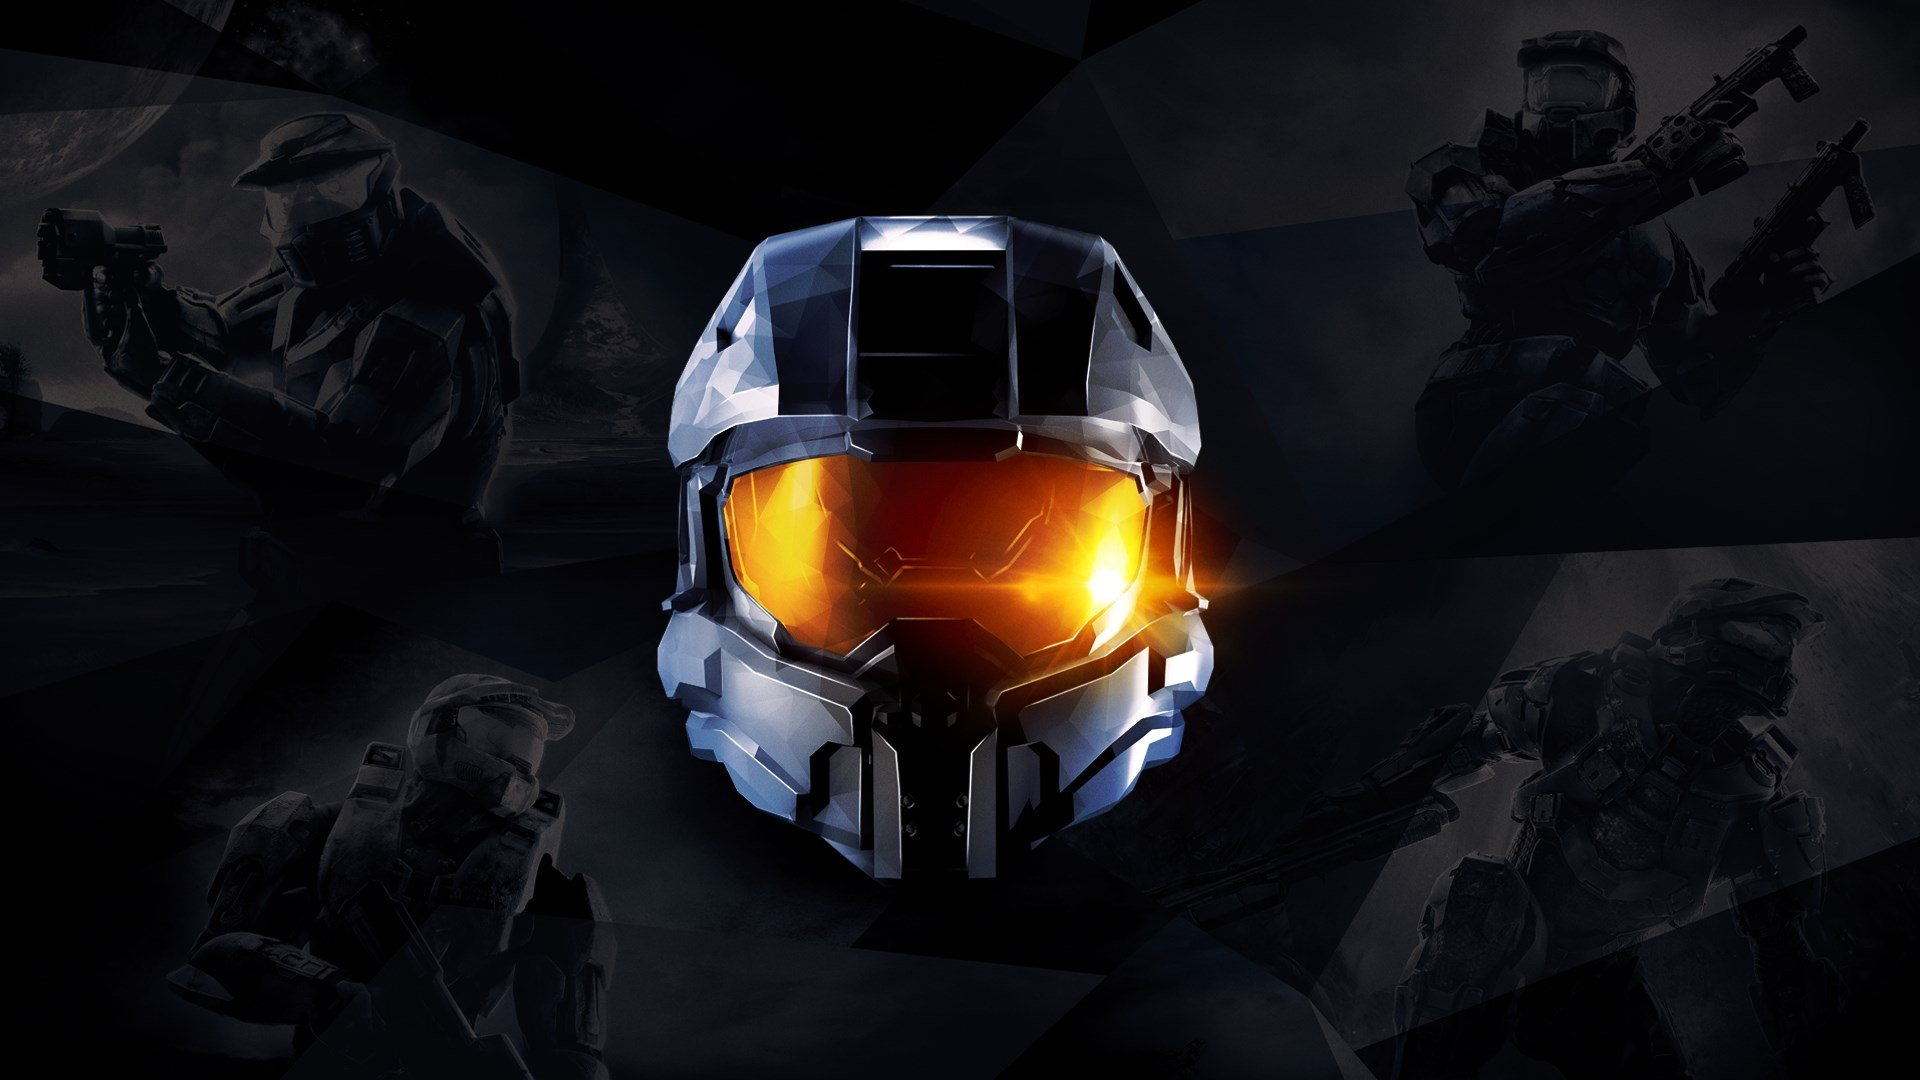 Was Halo: The Master Chief Collection Considered for PS4?